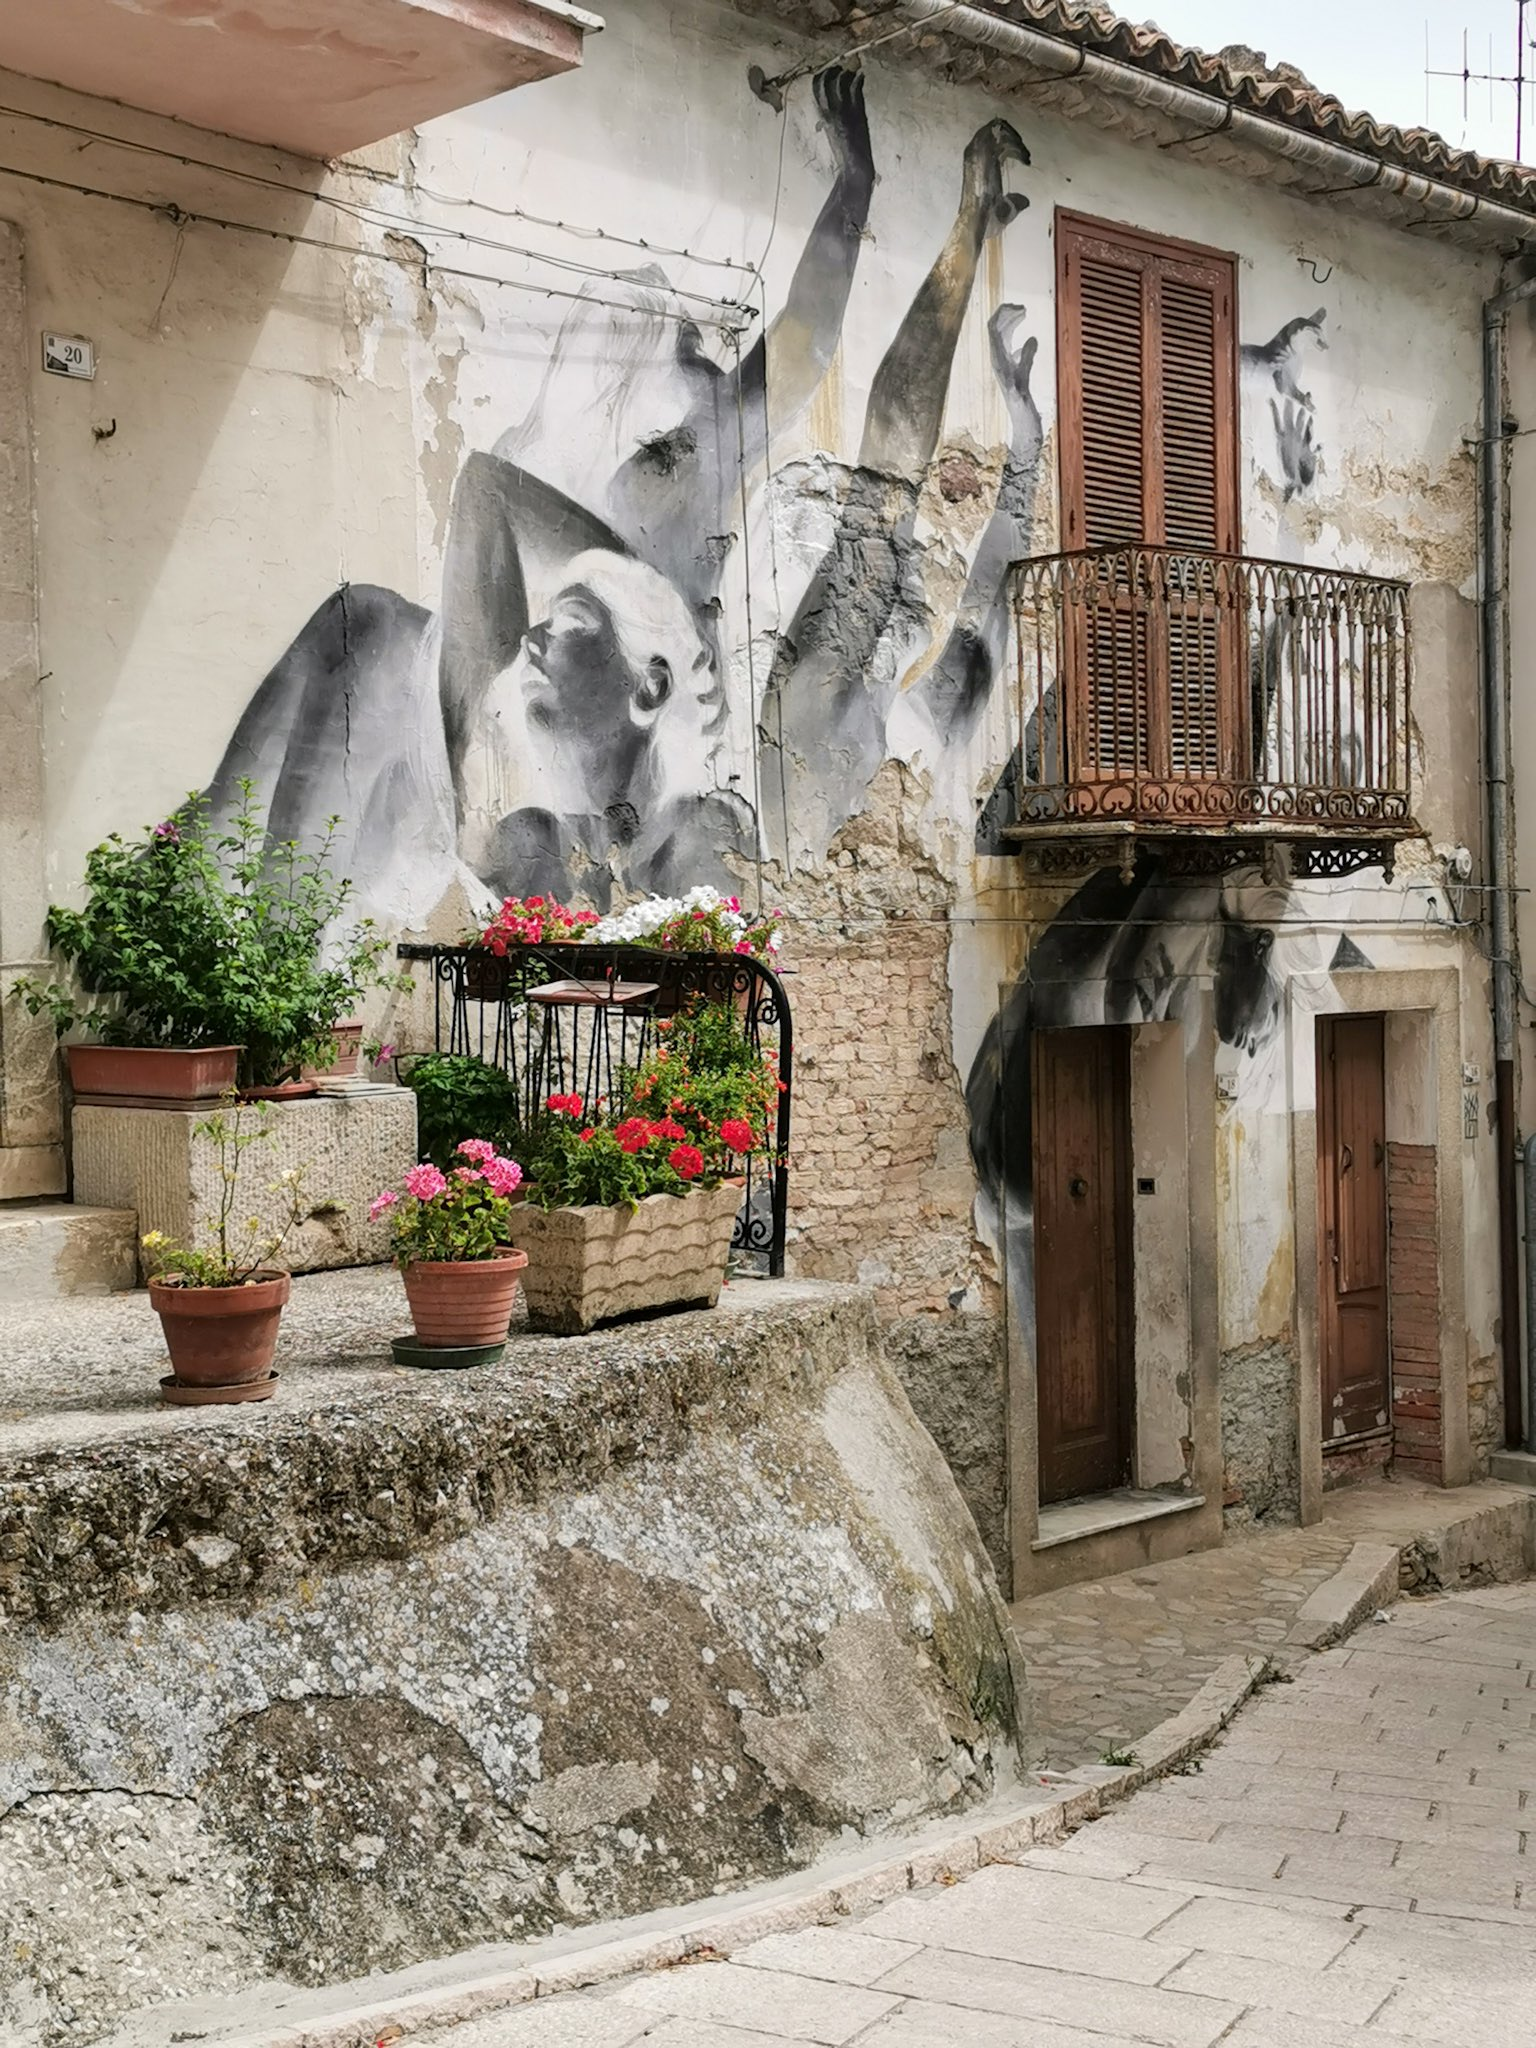 The murals of Civitacampomarano, in the region of Molise